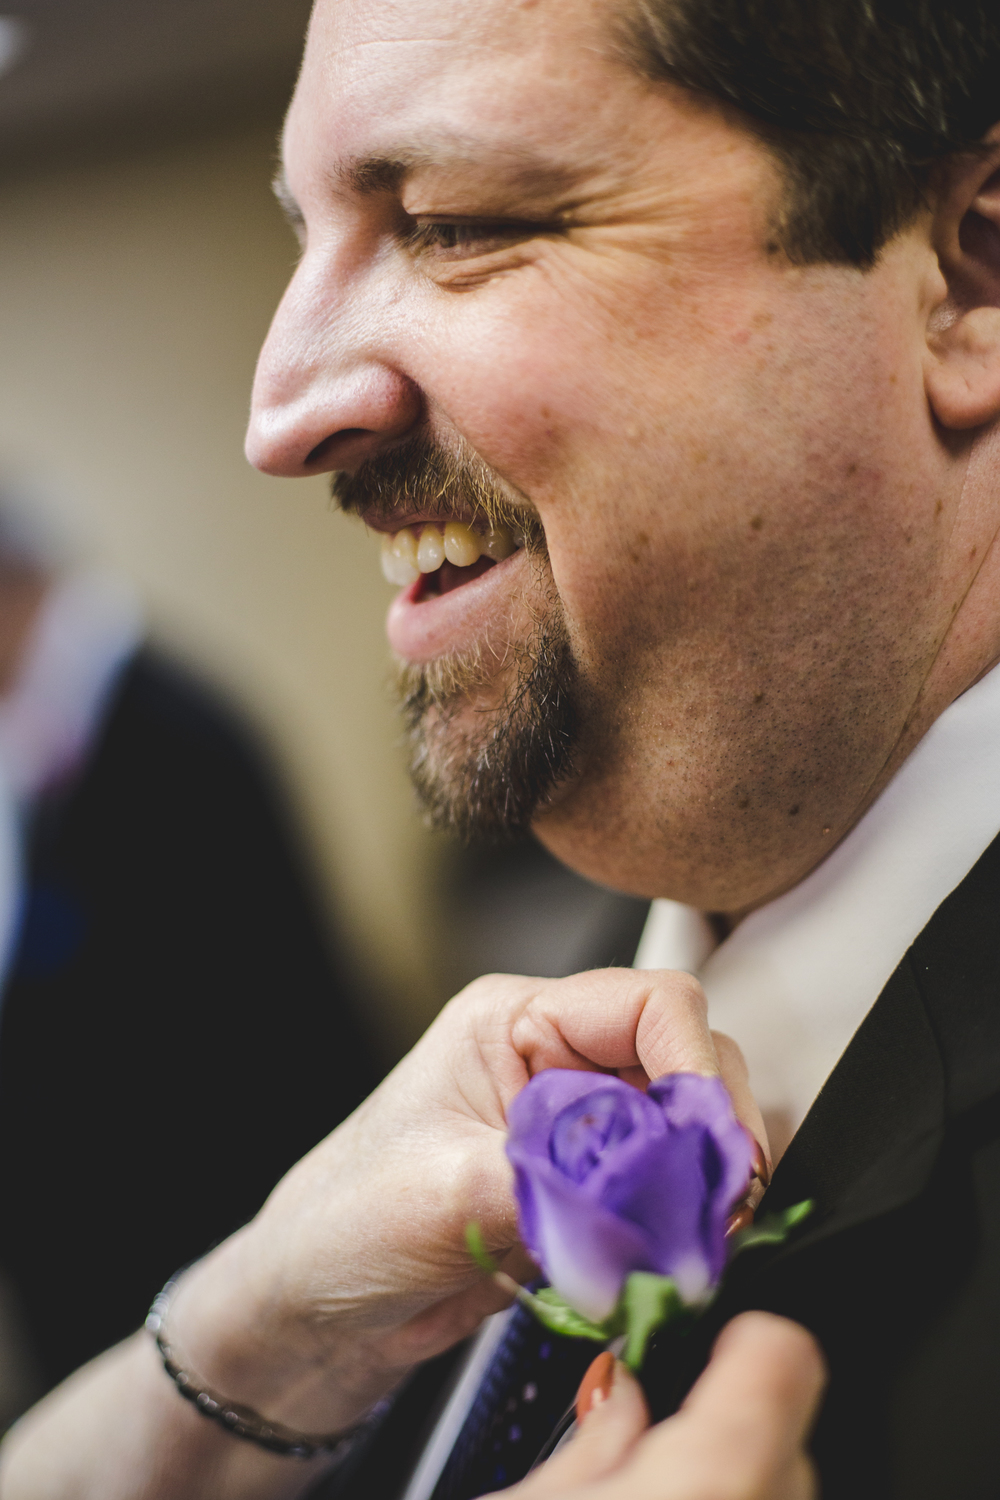 rs russell groom puts boutonnière on smiling